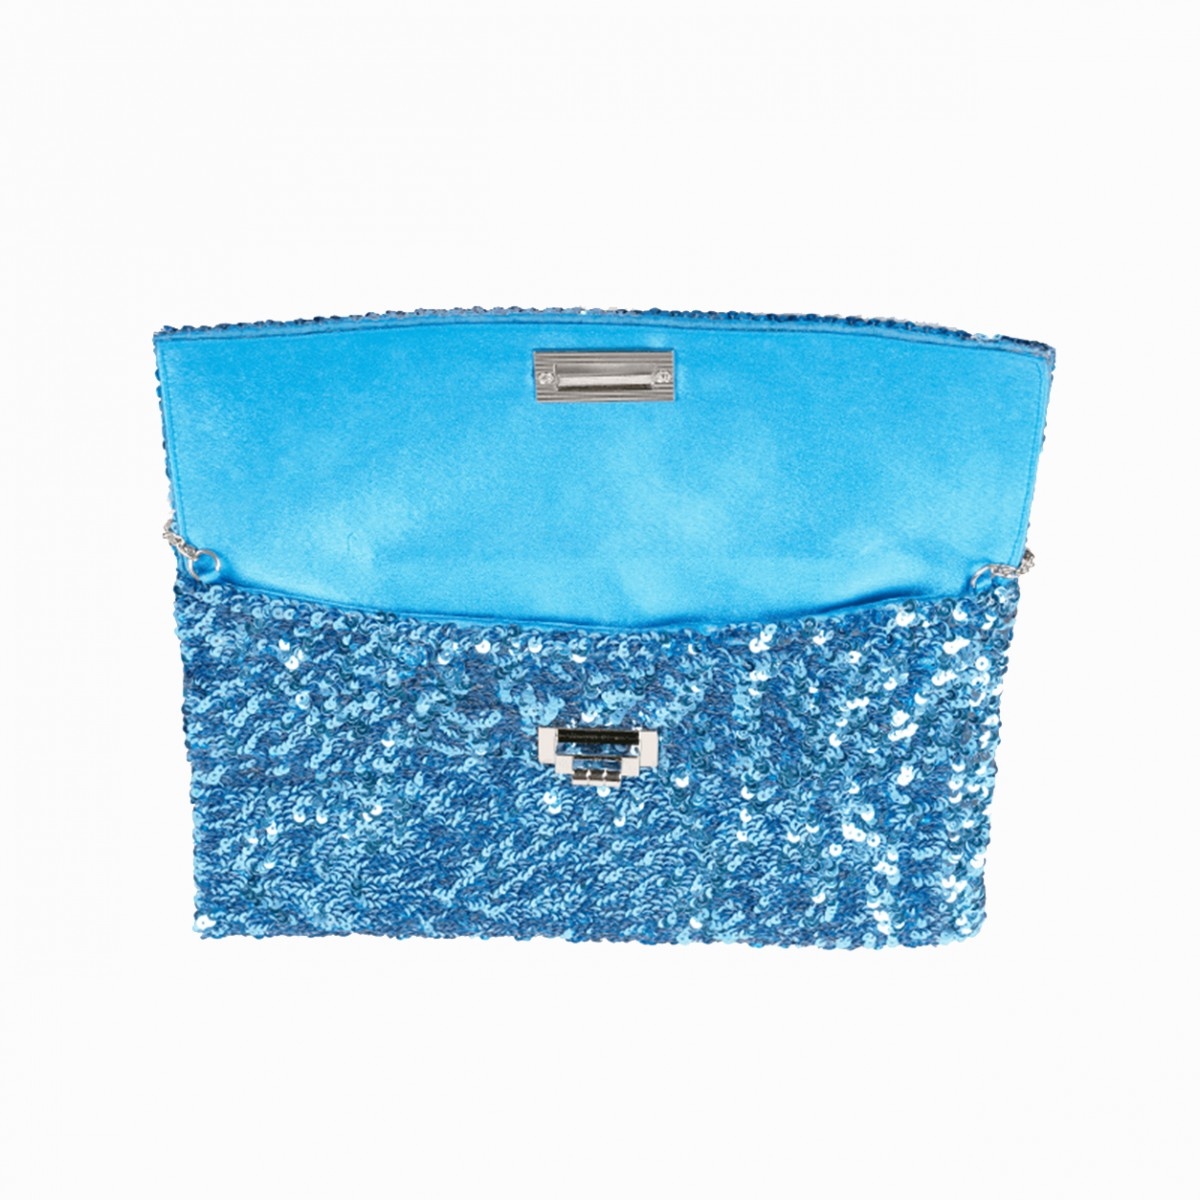 Sequin Clutch Bag - Sky Blue